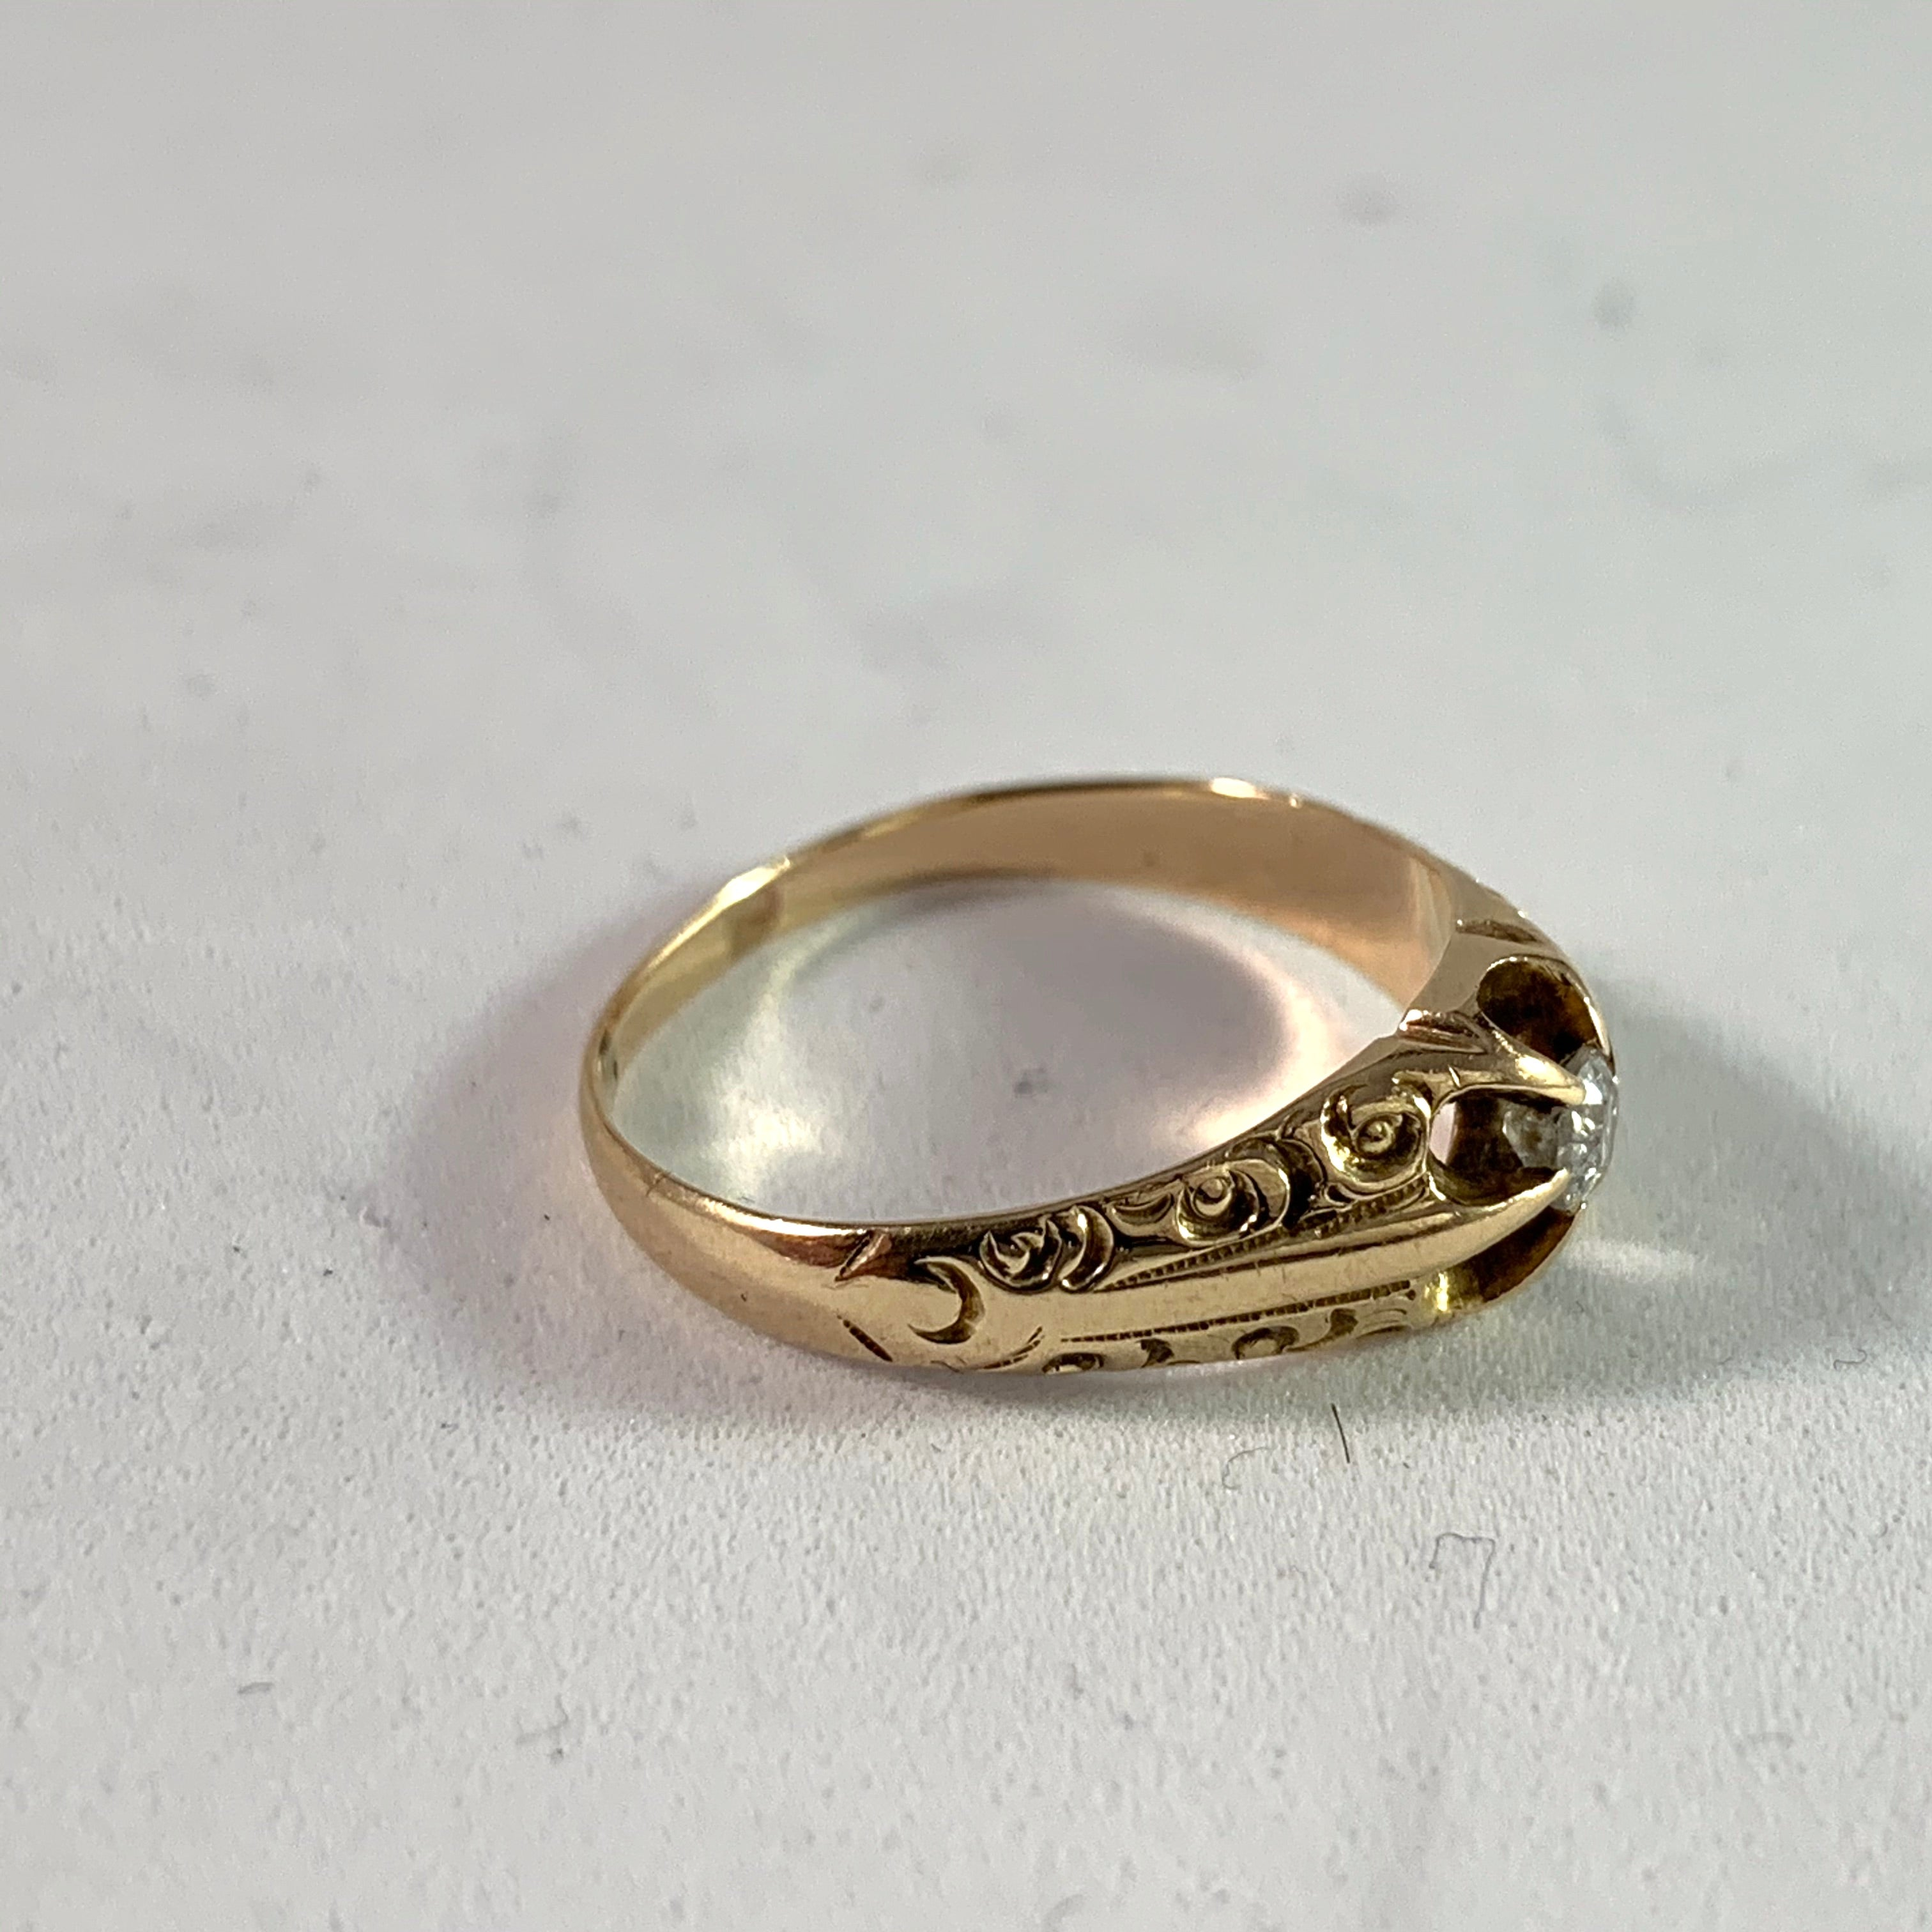 Edwardian 14k Gold 0.10ct Old Cut Diamond Engagement Ring. Maker's Mark